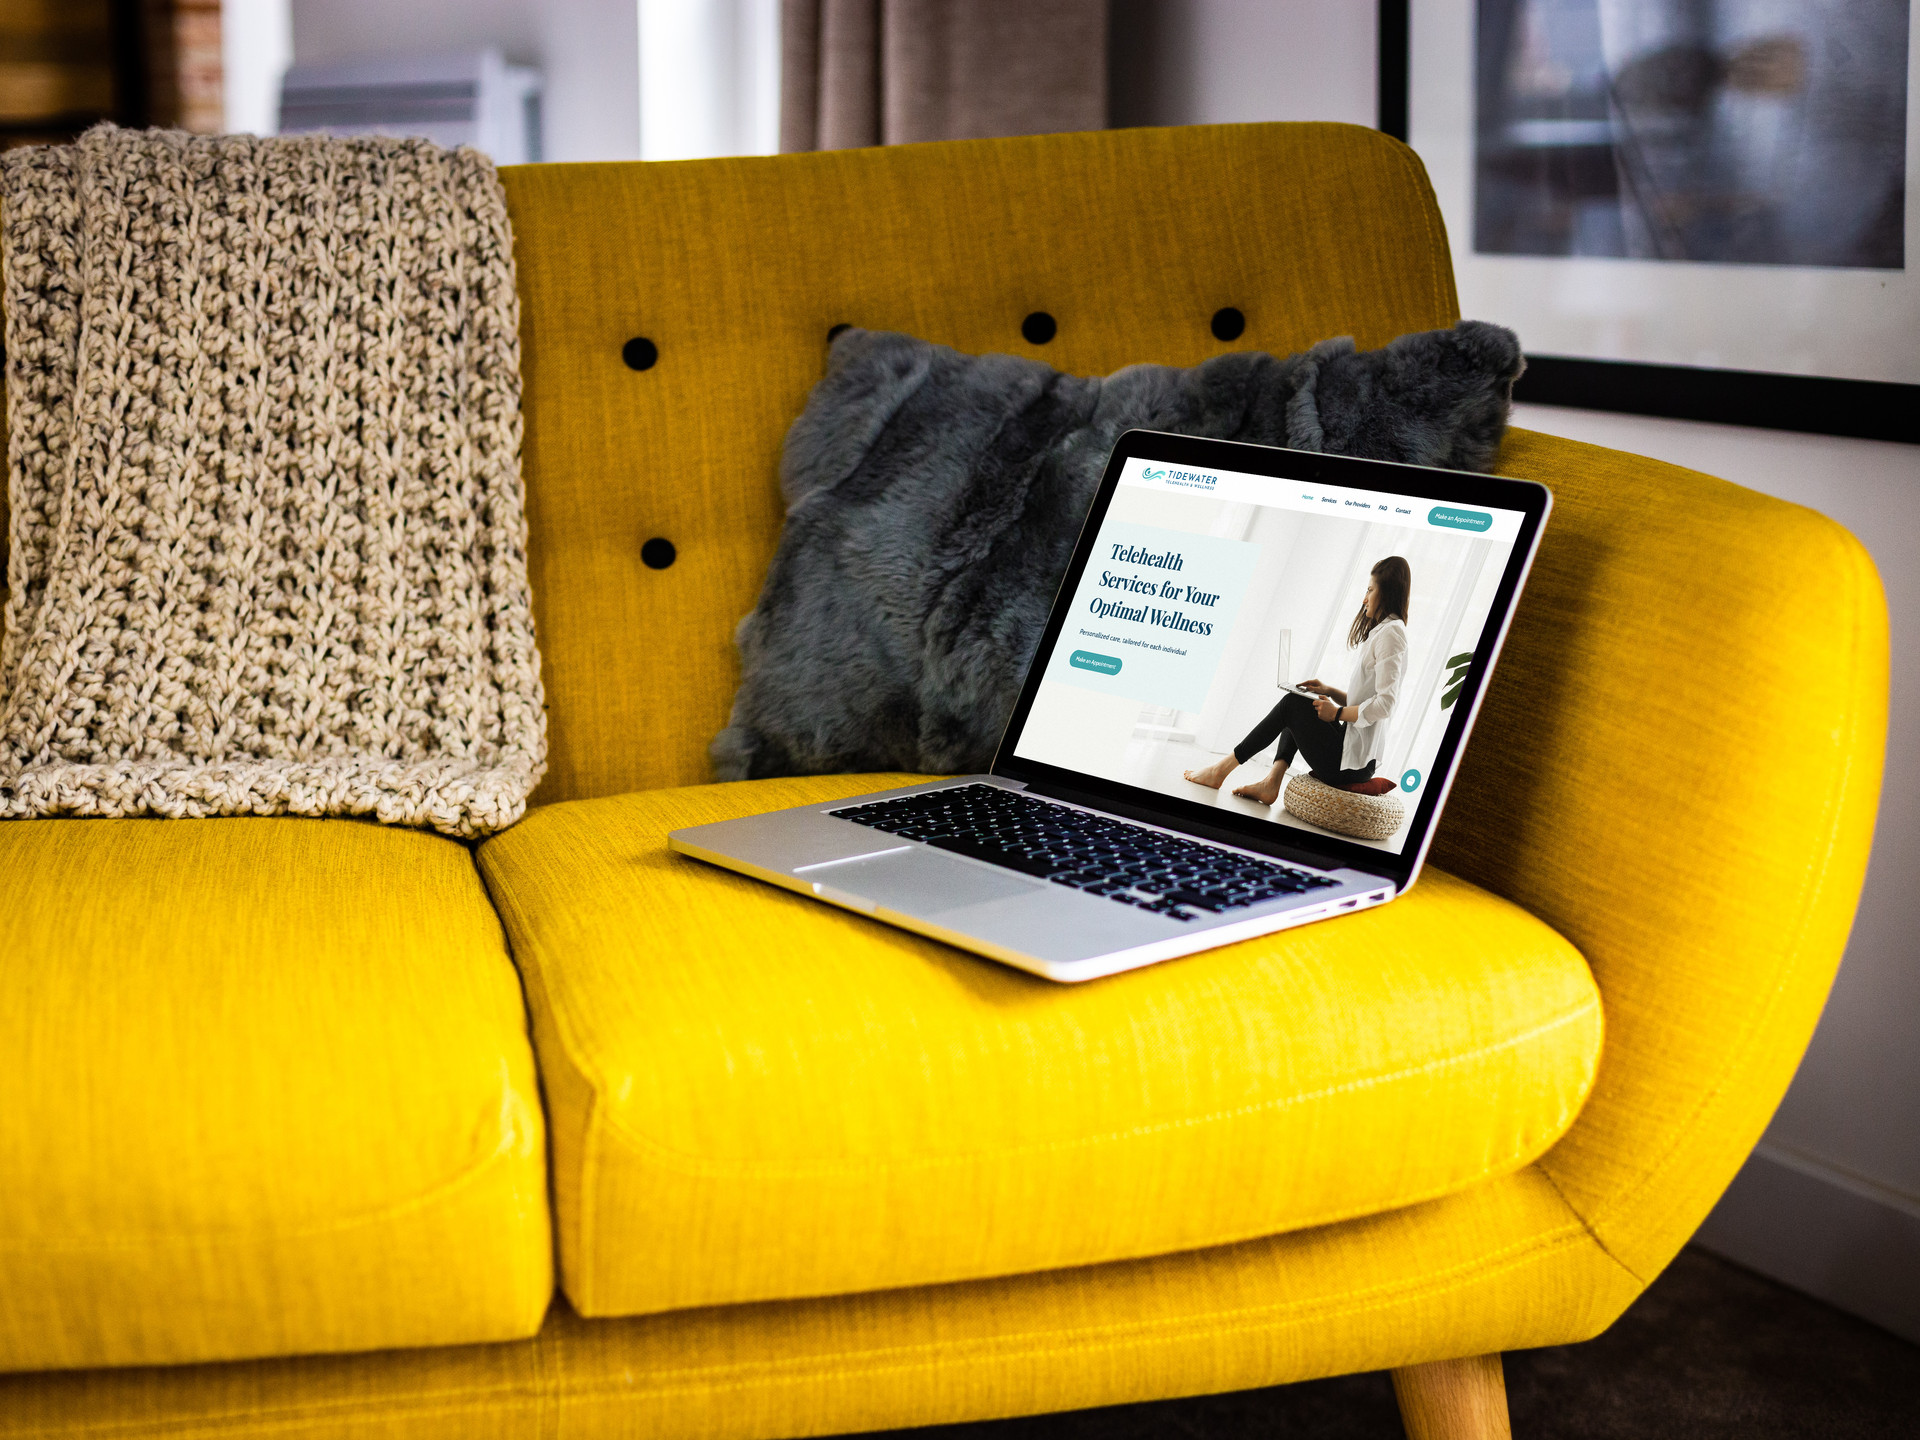 MacBook Pro Retina on Bright Sofa Real W